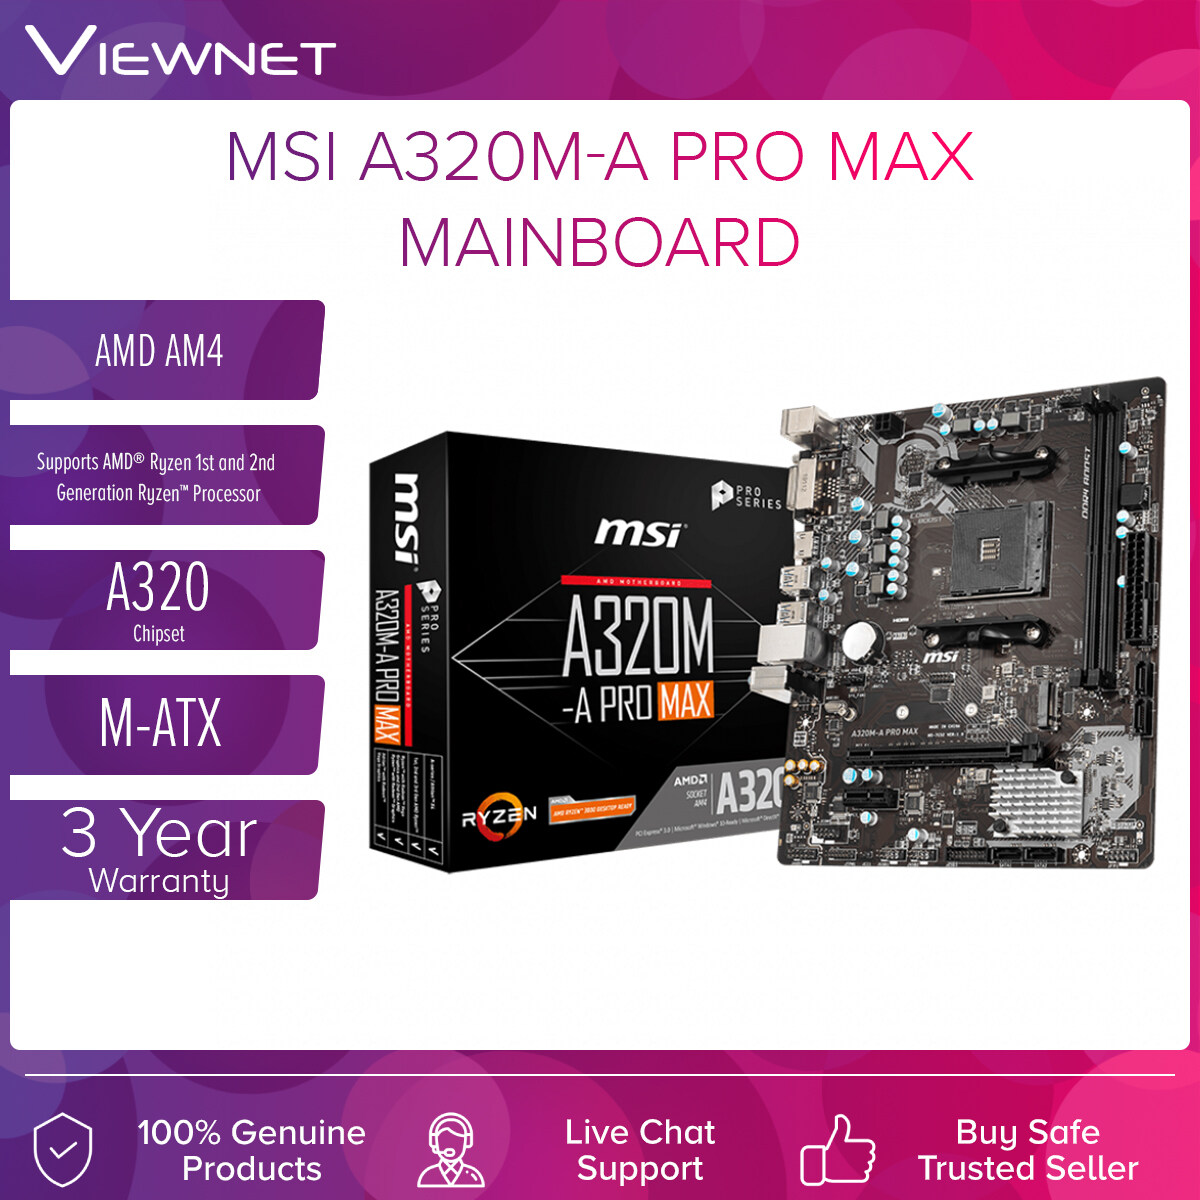 MSI AMD AM4 A320M-A PRO MAX MOTHERBOARD